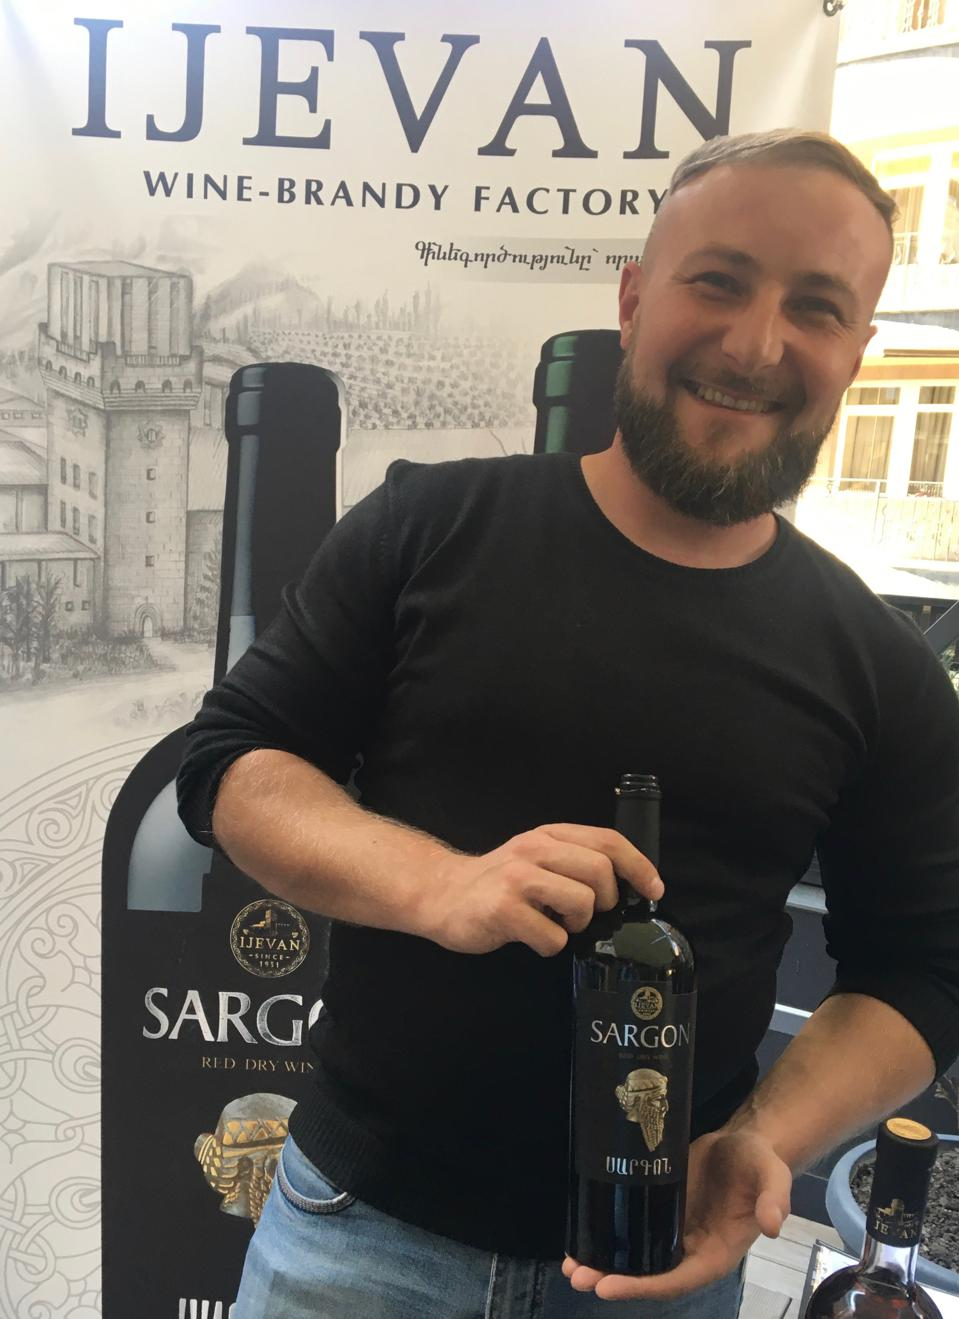 Sargon wine from  Ijevan